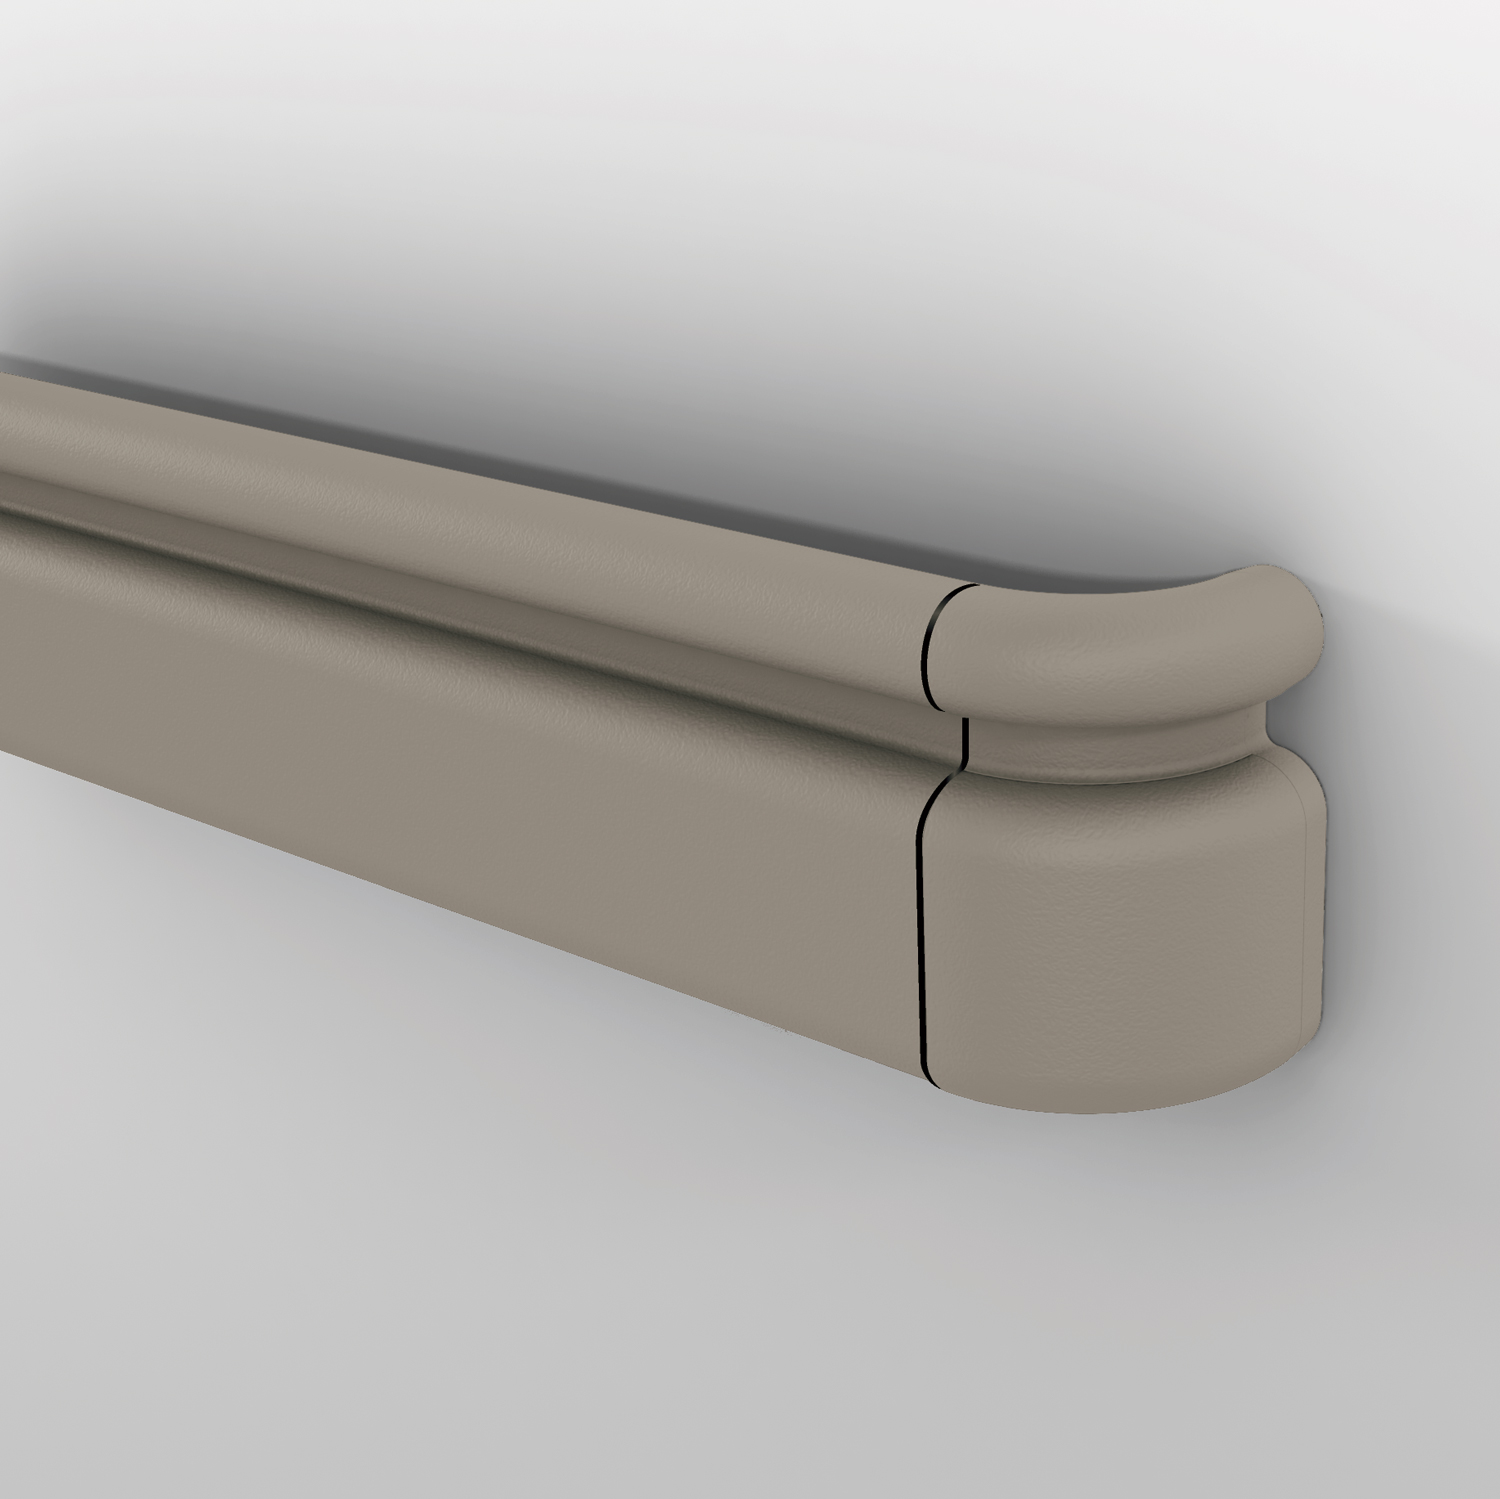 3100 handrail with round top rail in shiprock gray